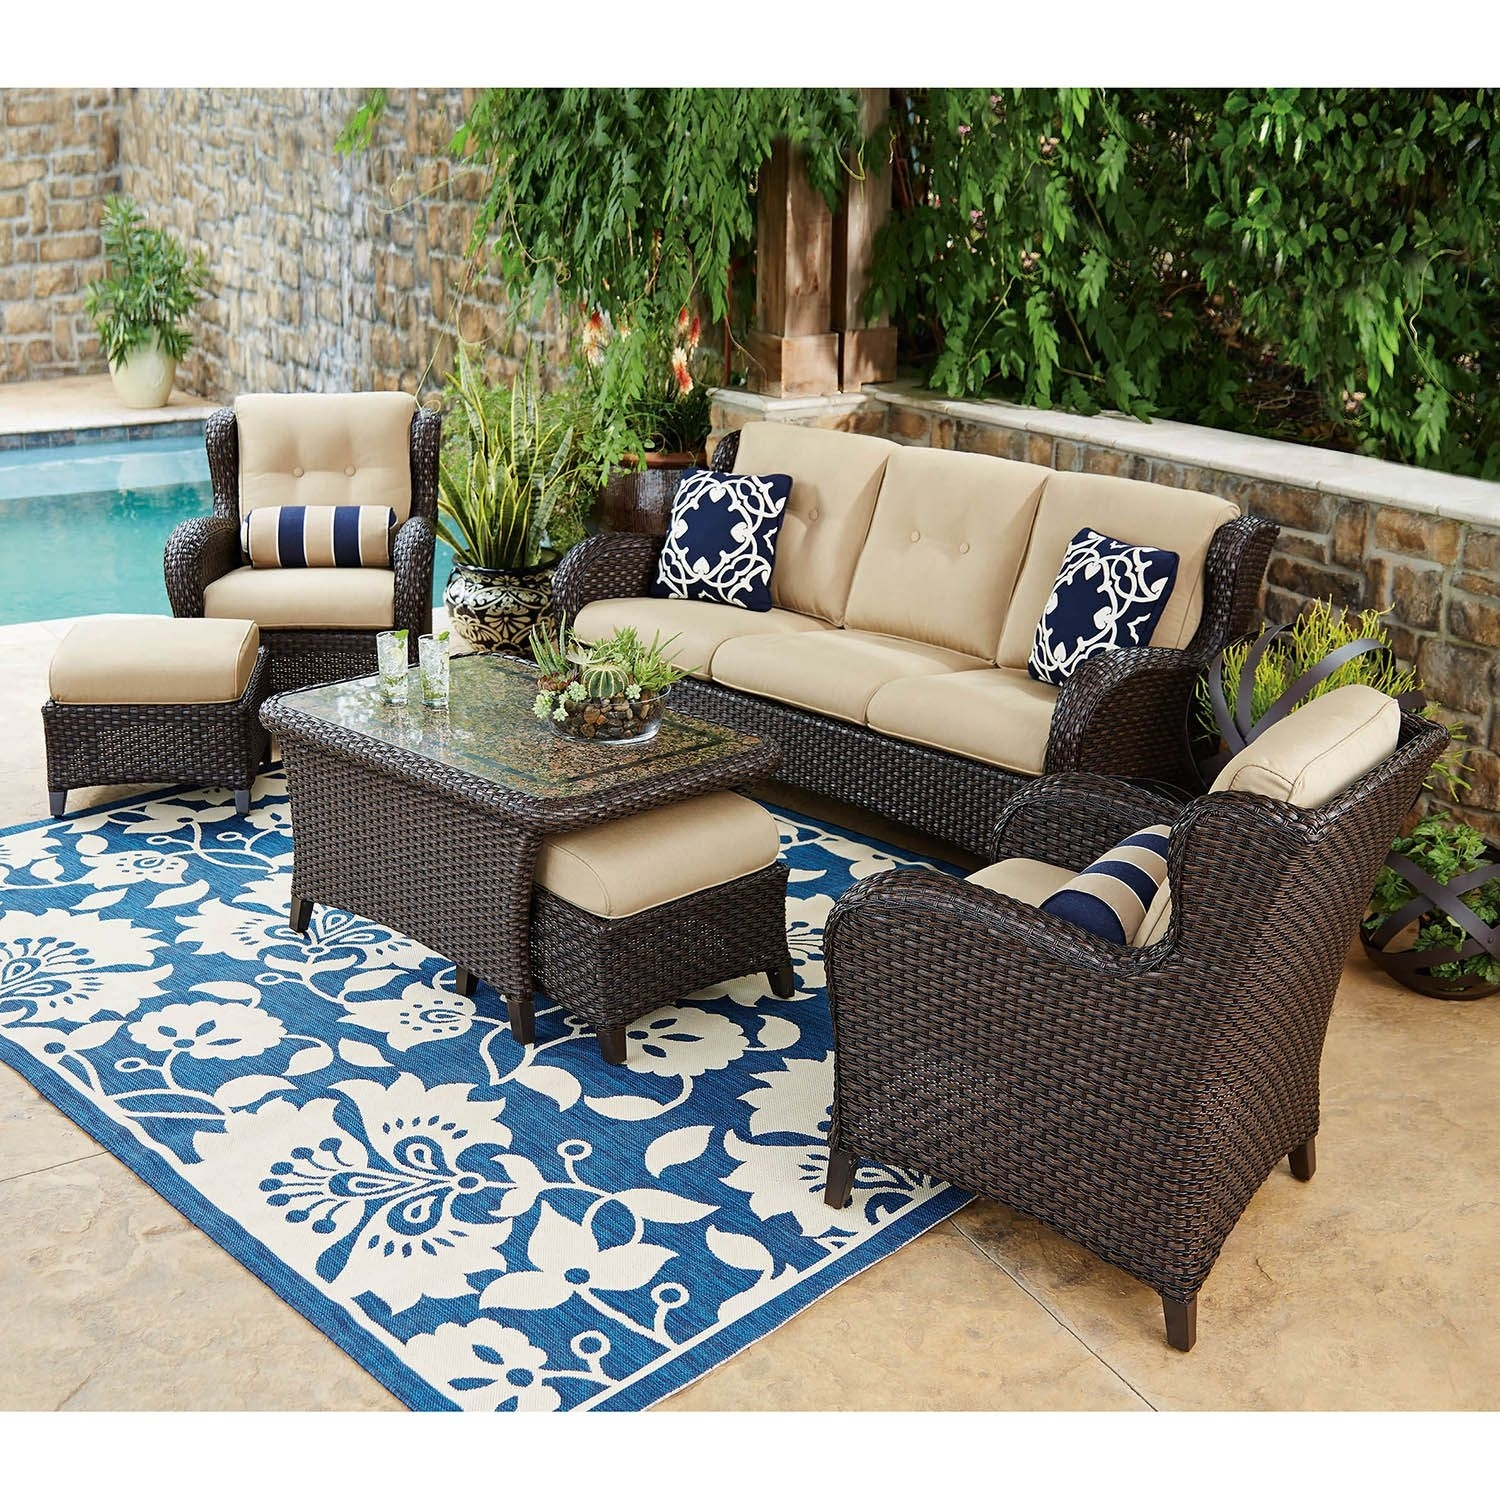 Outdoor Patio Sofas - Home Design Ideas regarding Patio Sofas